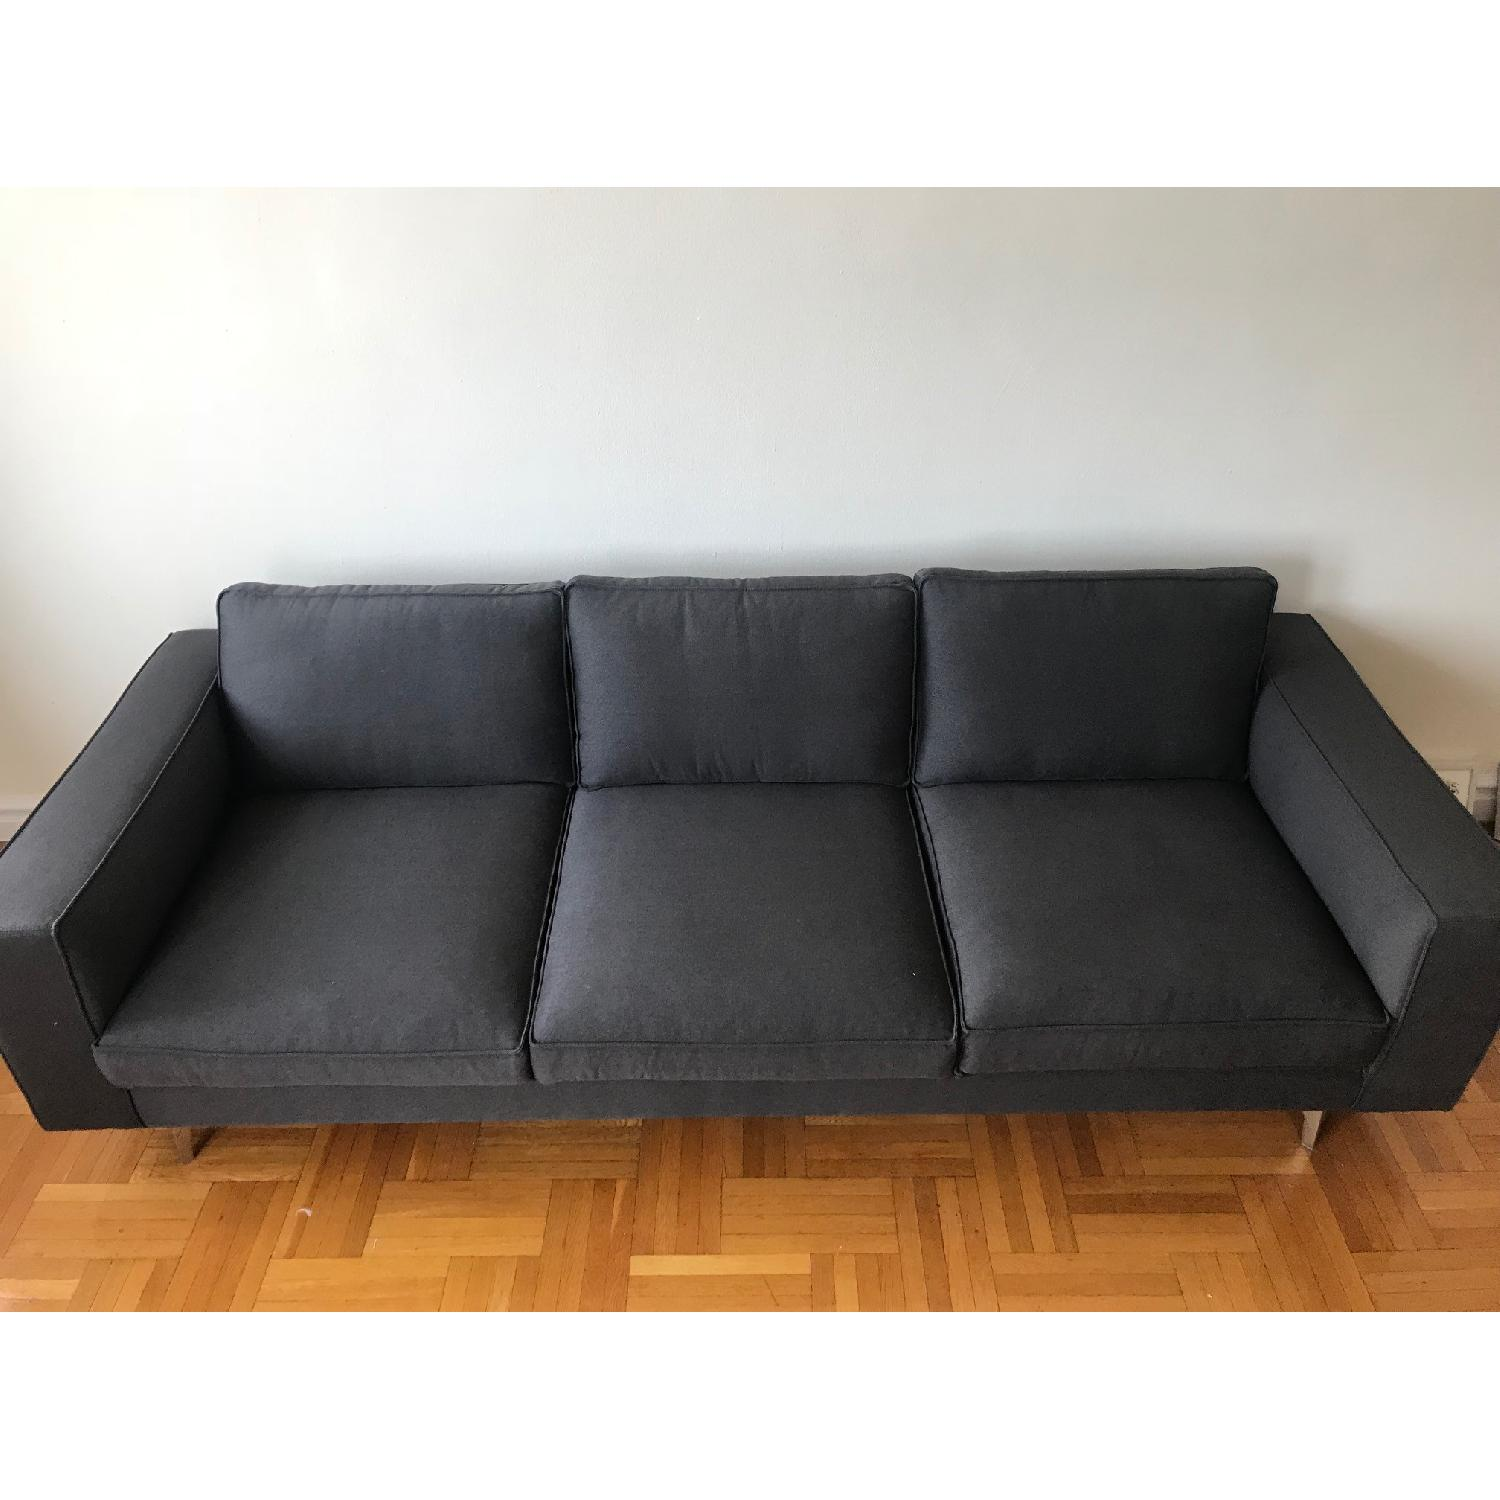 Calligaris Square 3 Seater Sofa w/ Metal Legs-2